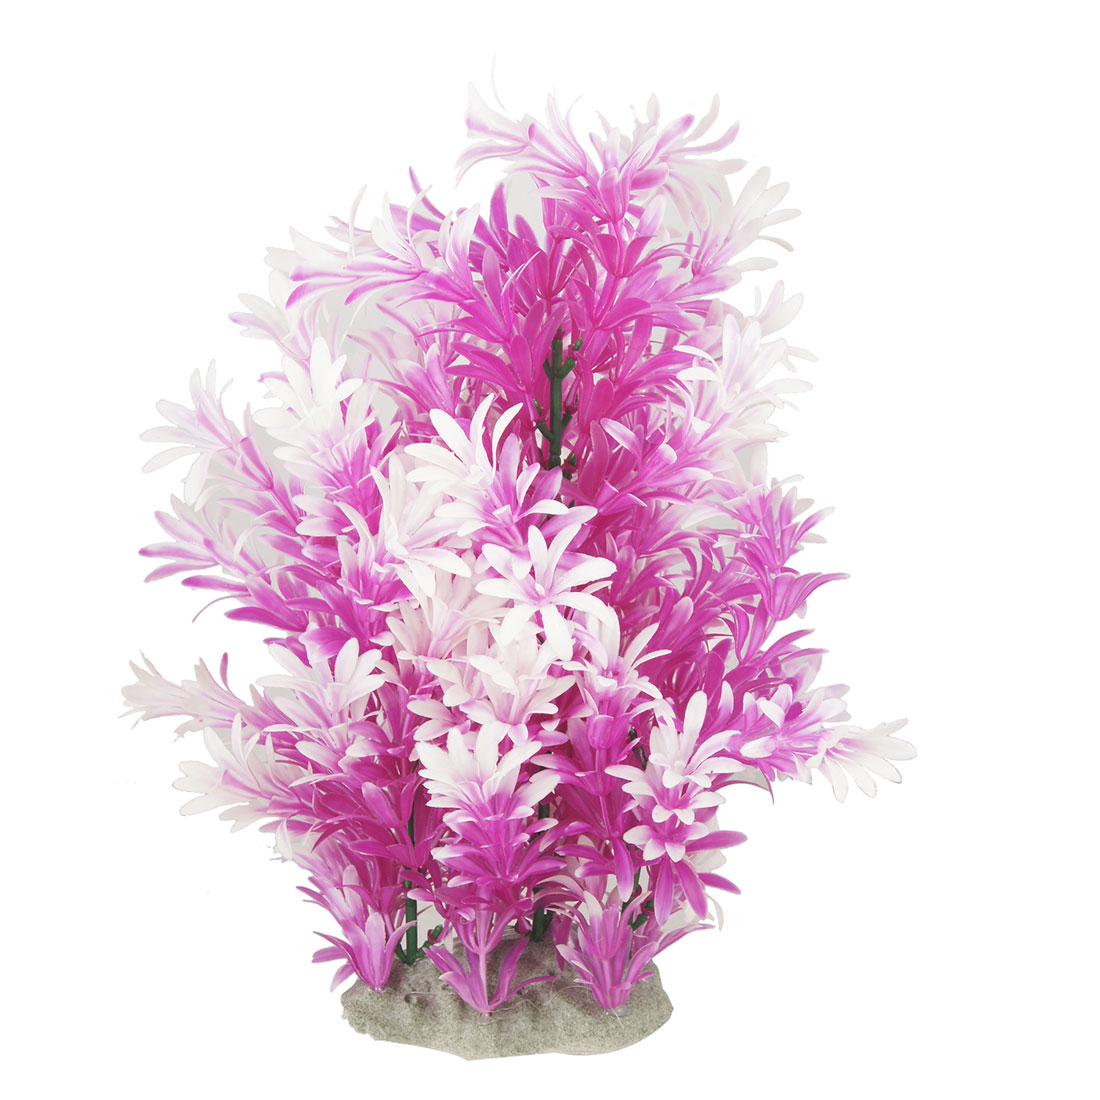 Purple White Underwater Plastic Grass Decoration for Fish Tank